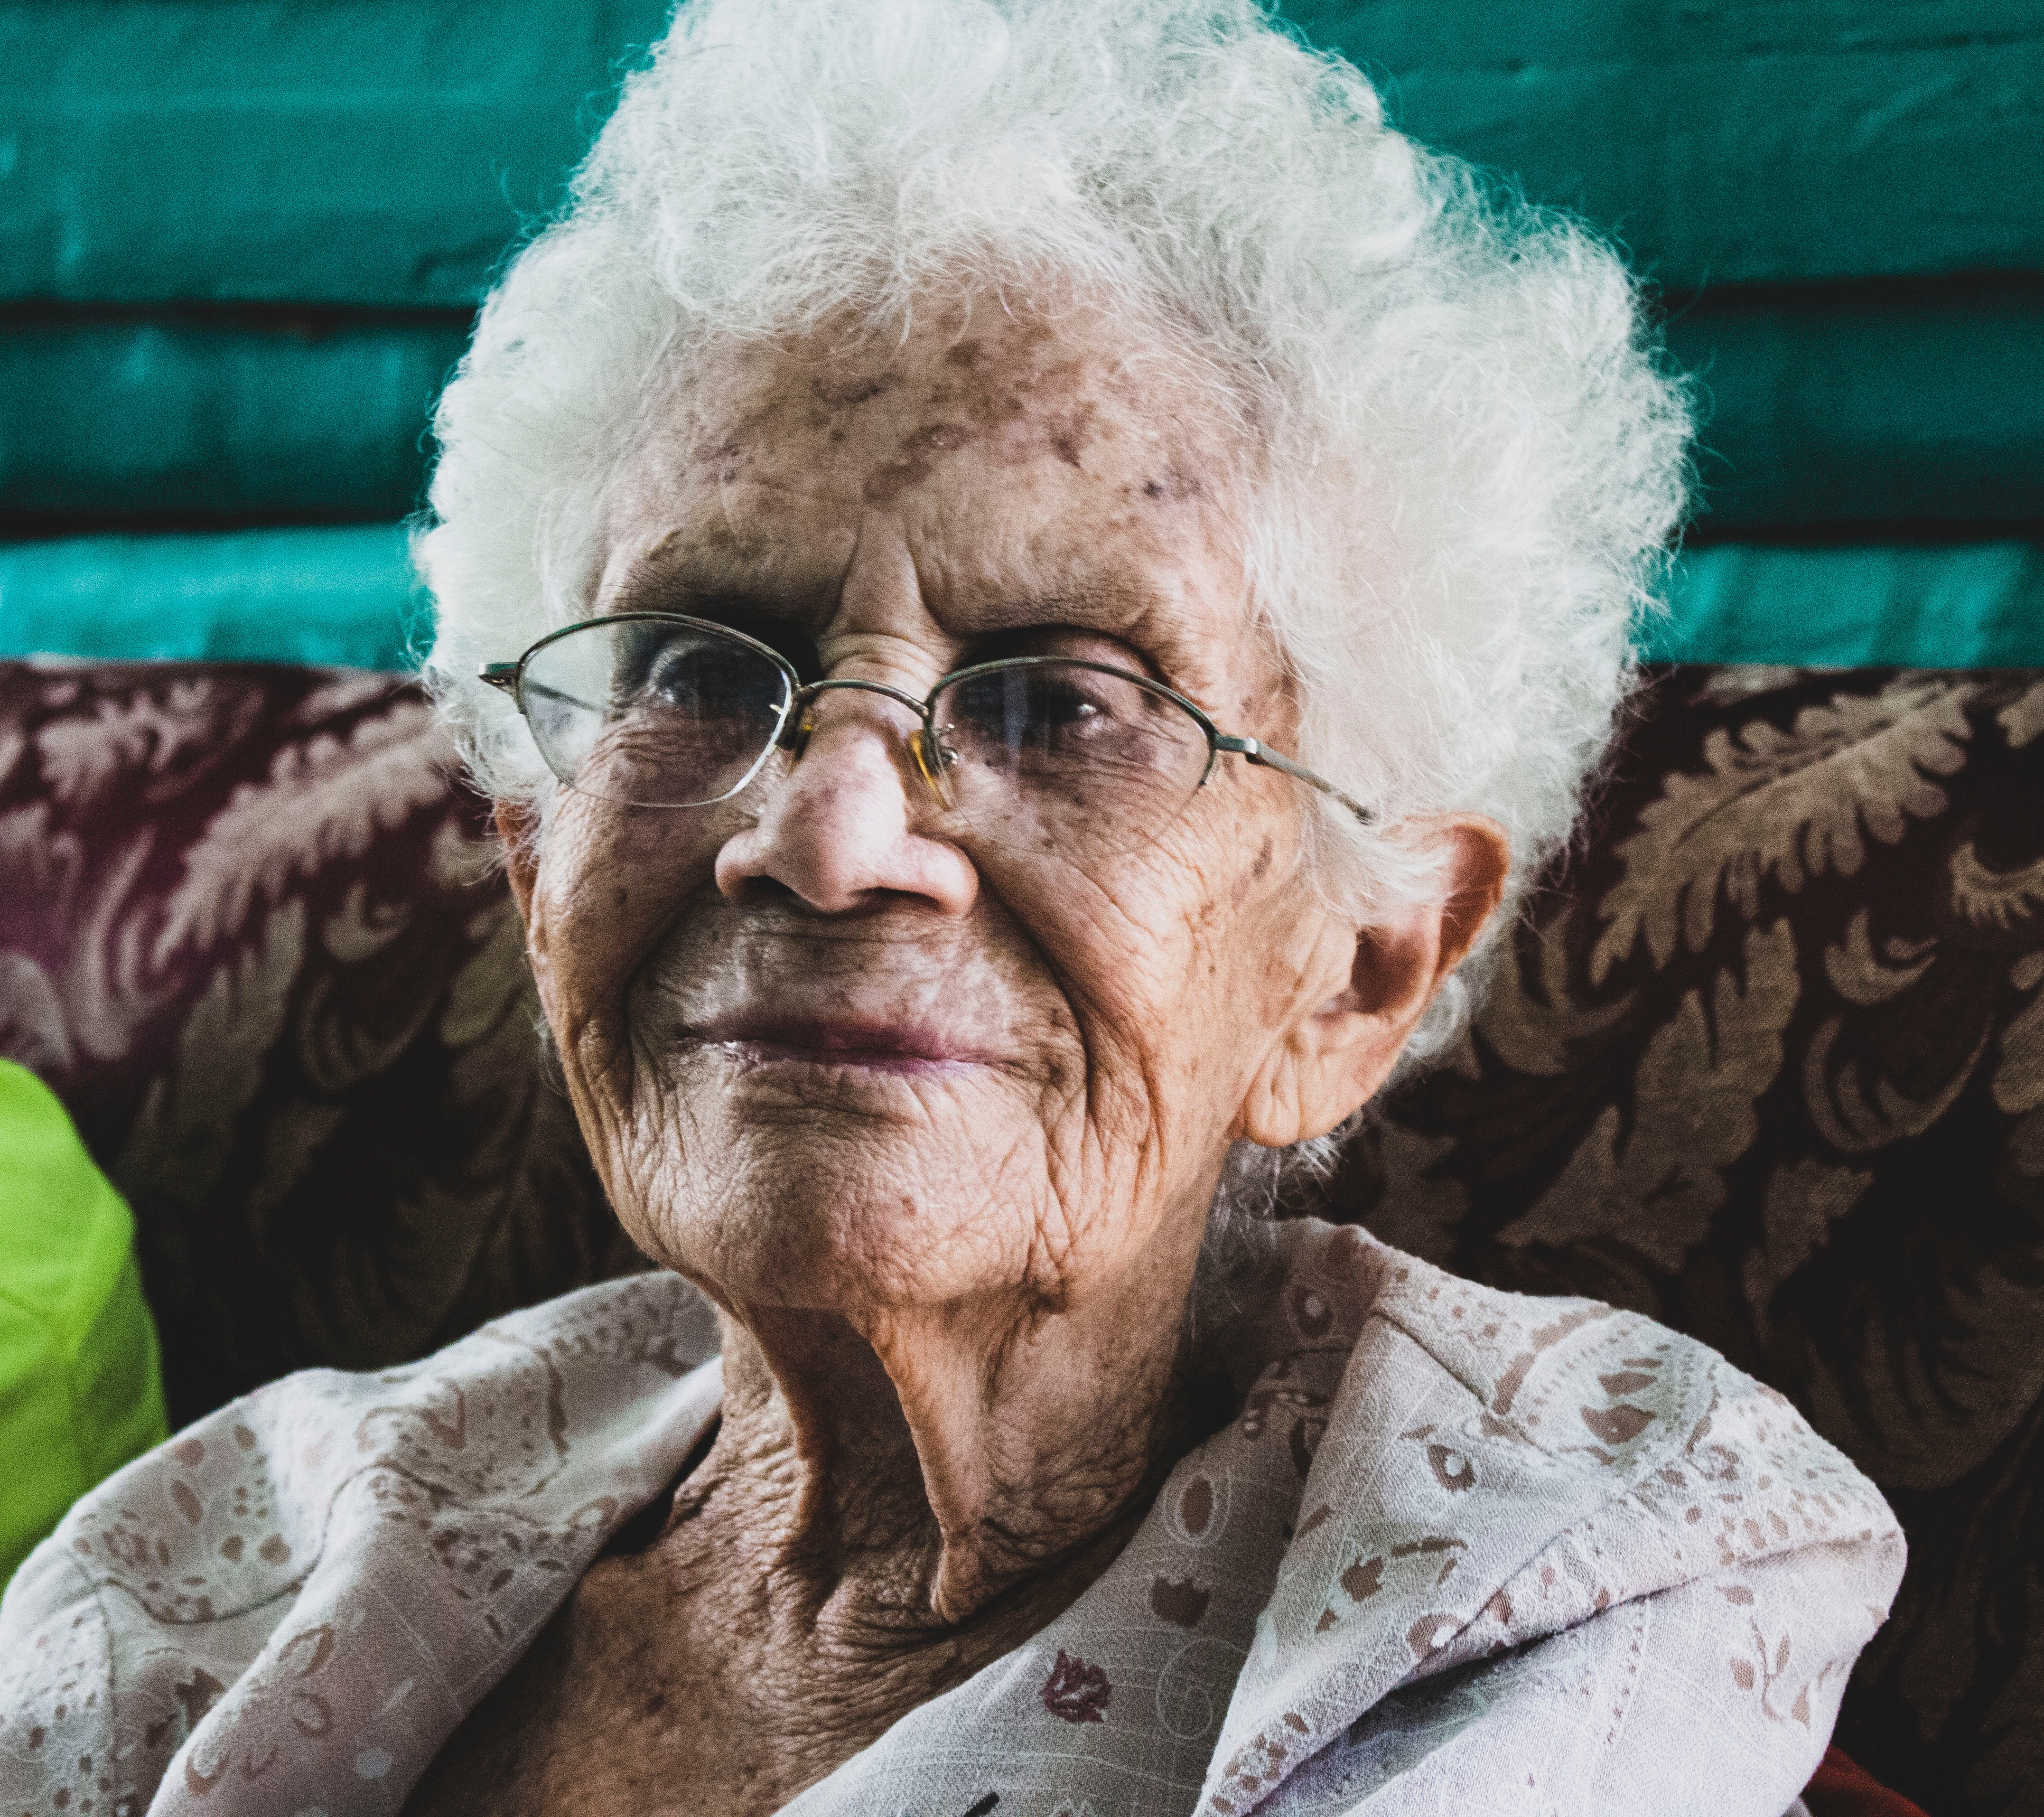 Elder Abuse During Covid-19